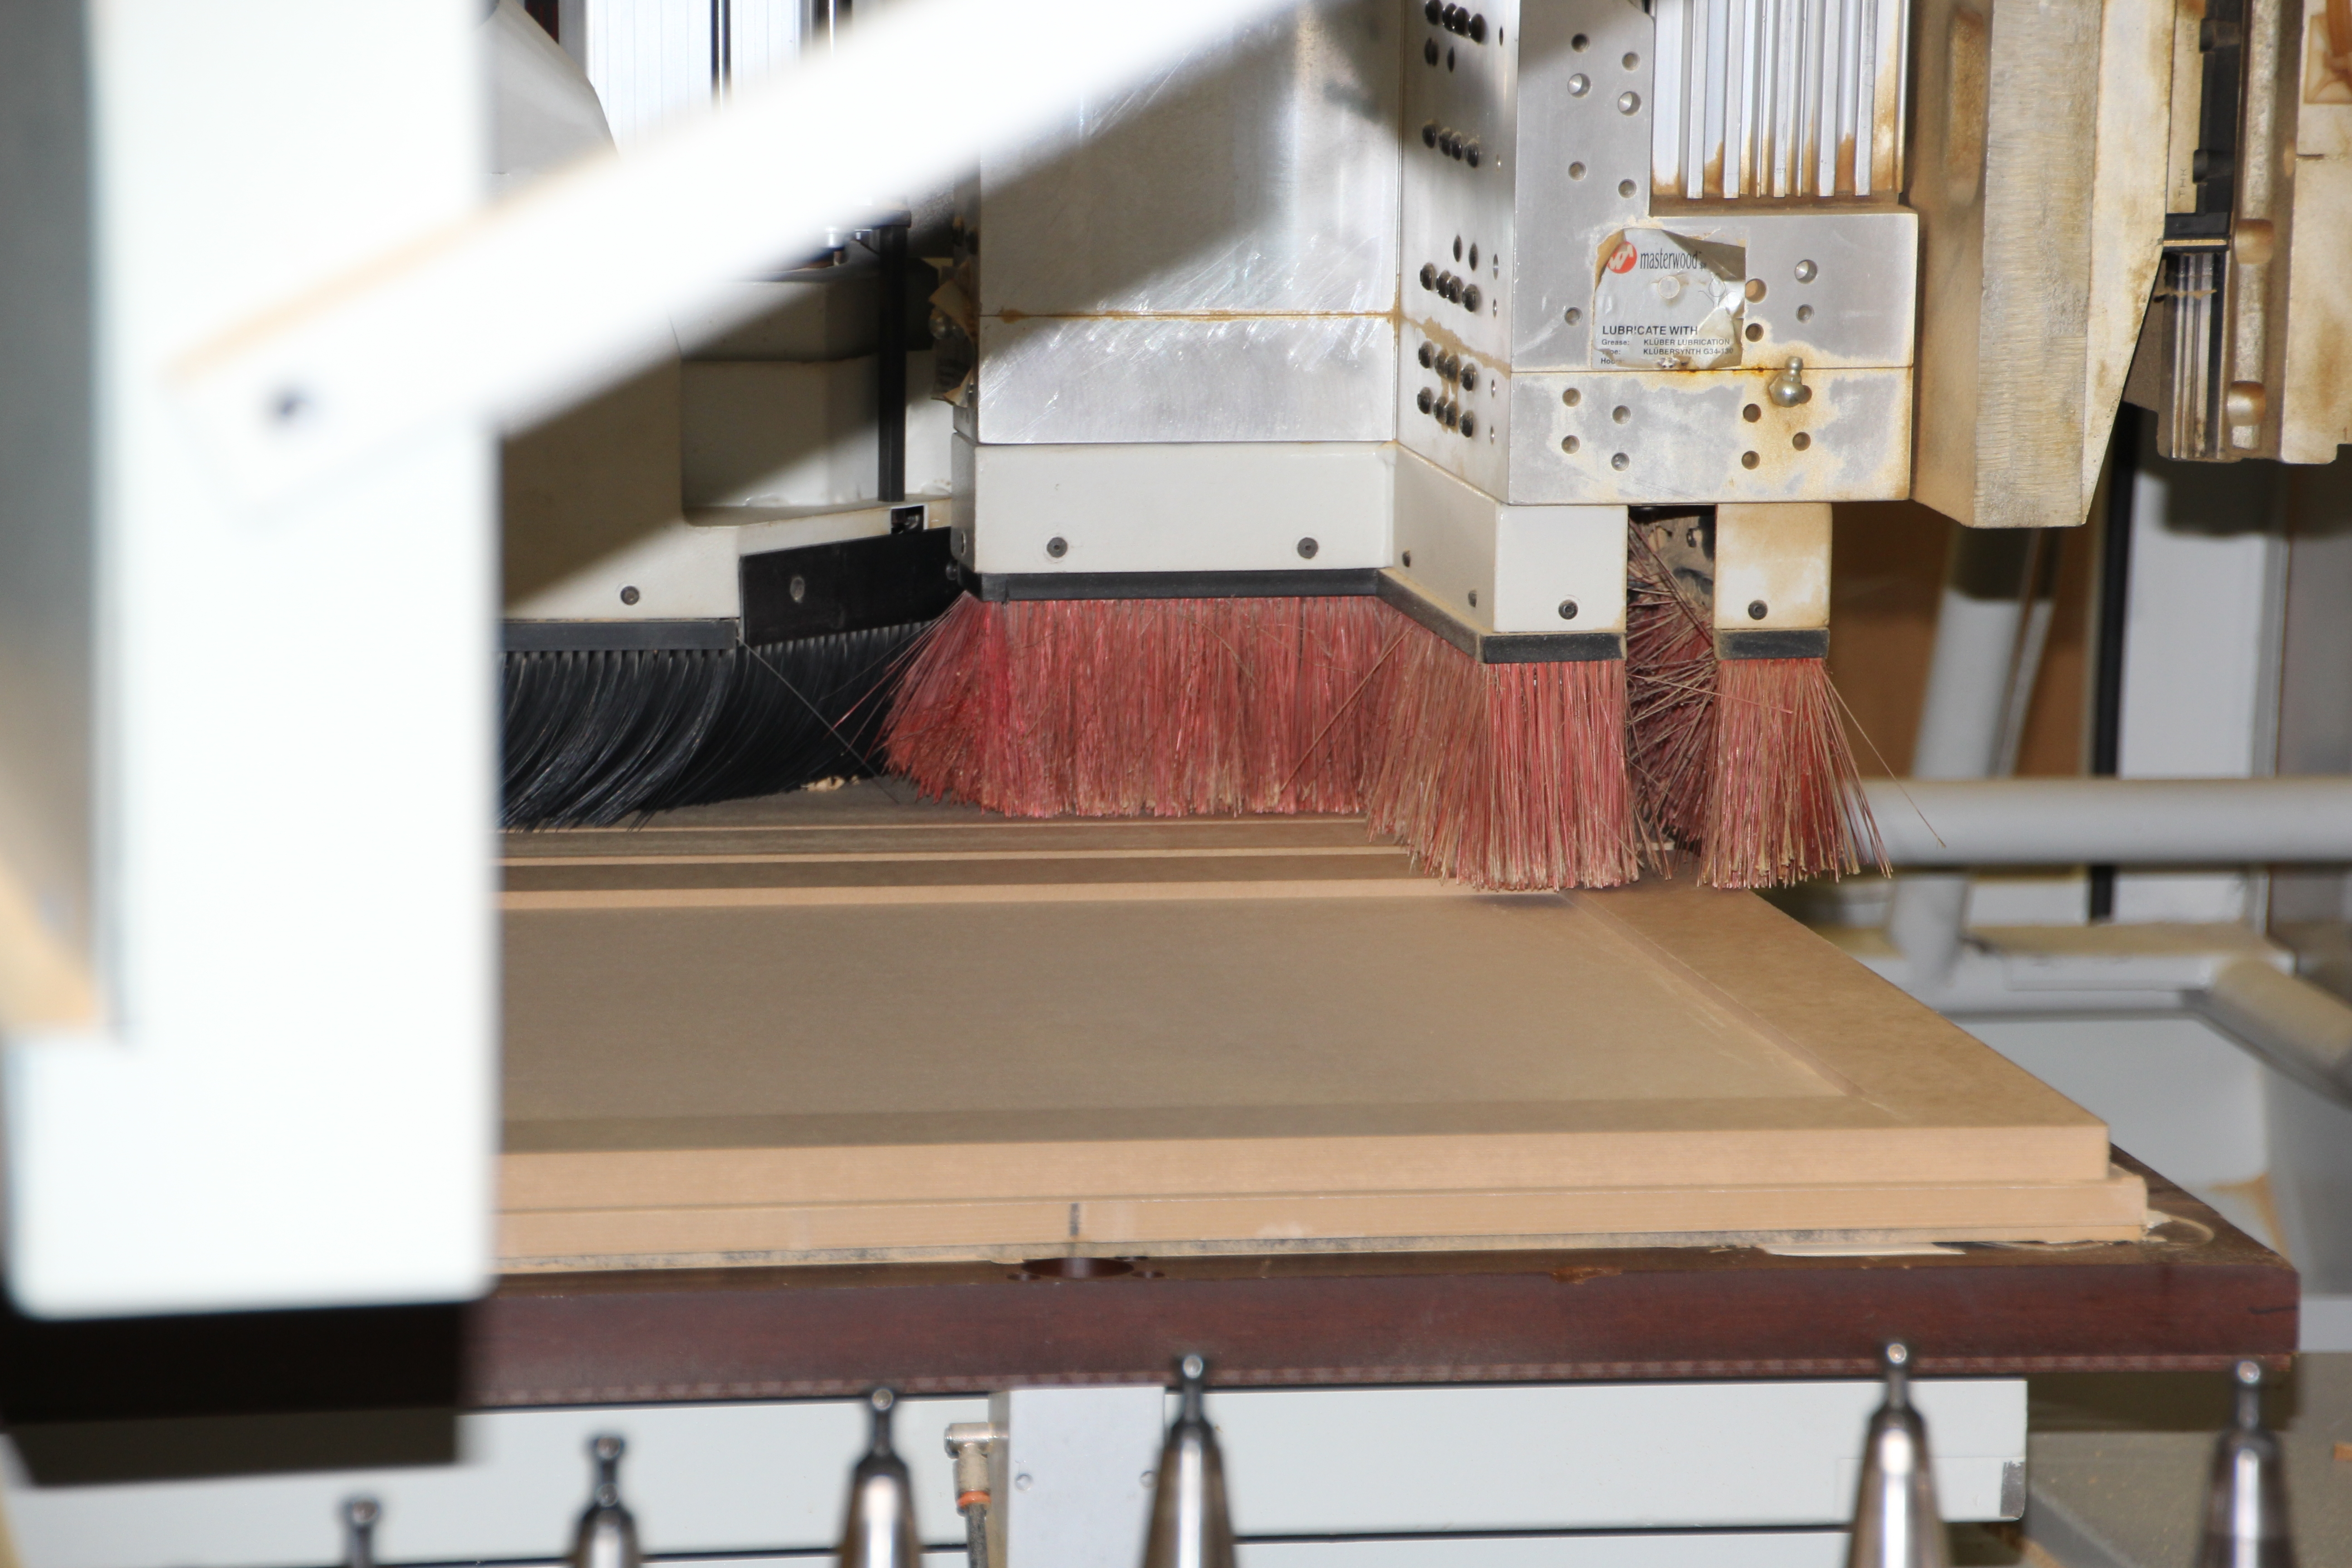 CNC Router carving out material to produce a door